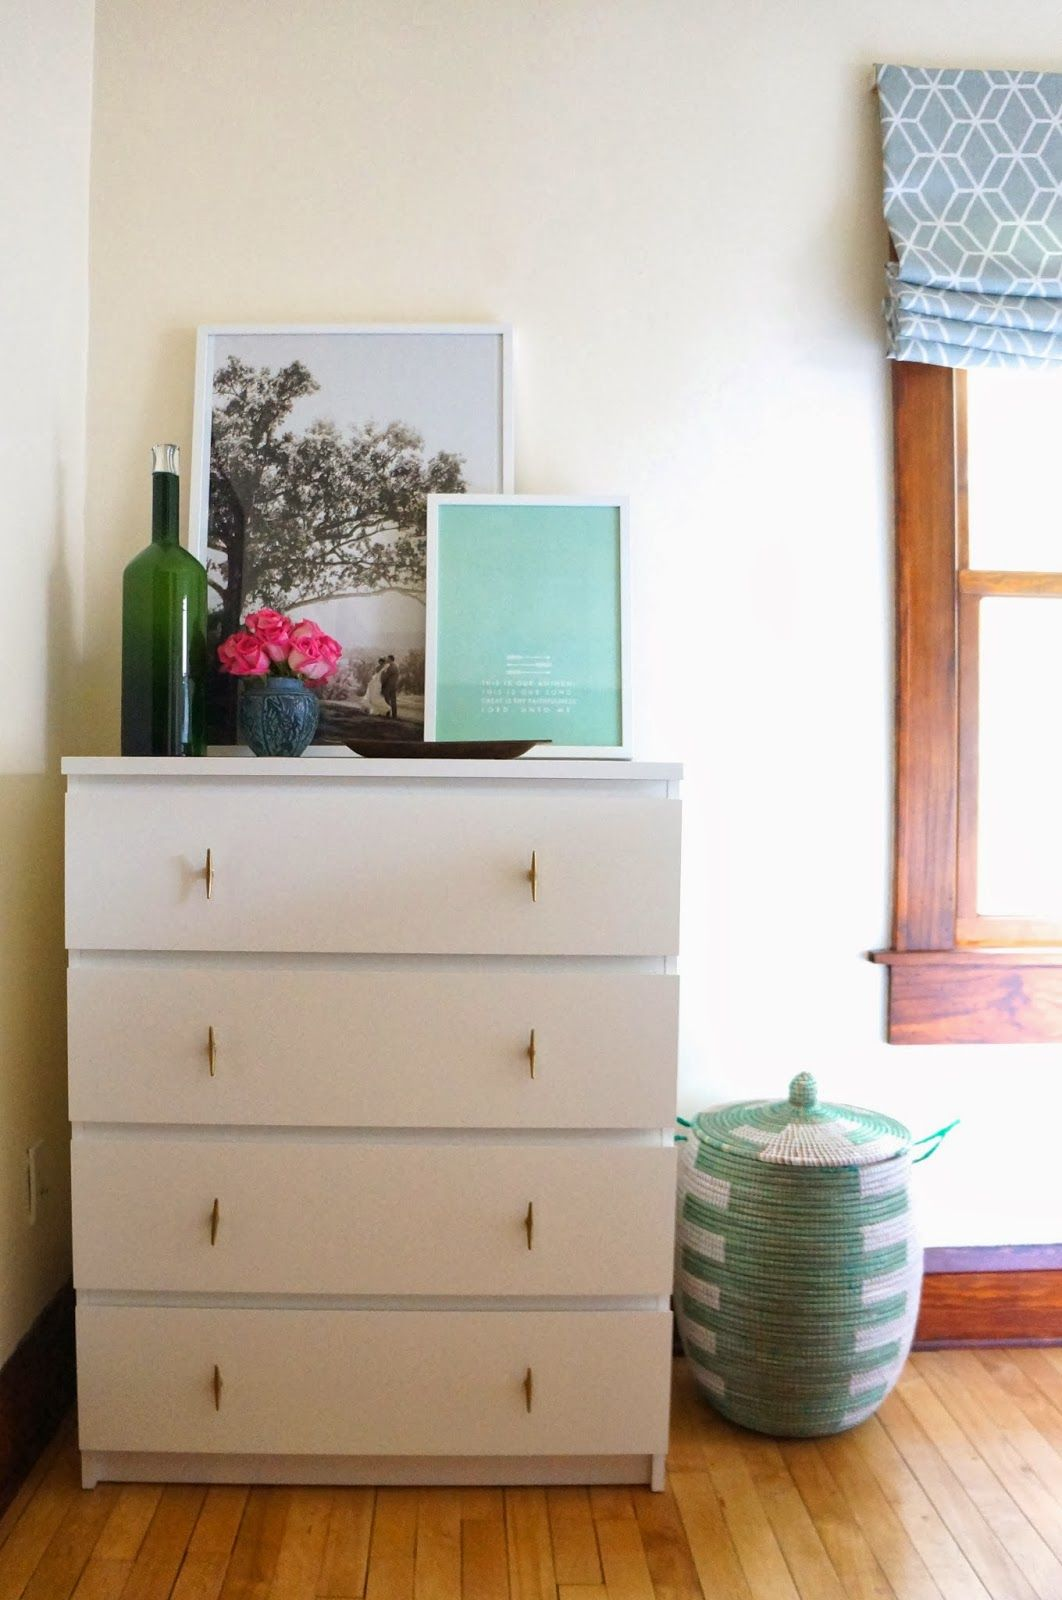 12 Makeovers For The Ikea Dresser Everyone Owns Malm Dresser Guest Bedroom Remodel Ikea Malm [ 1600 x 1062 Pixel ]